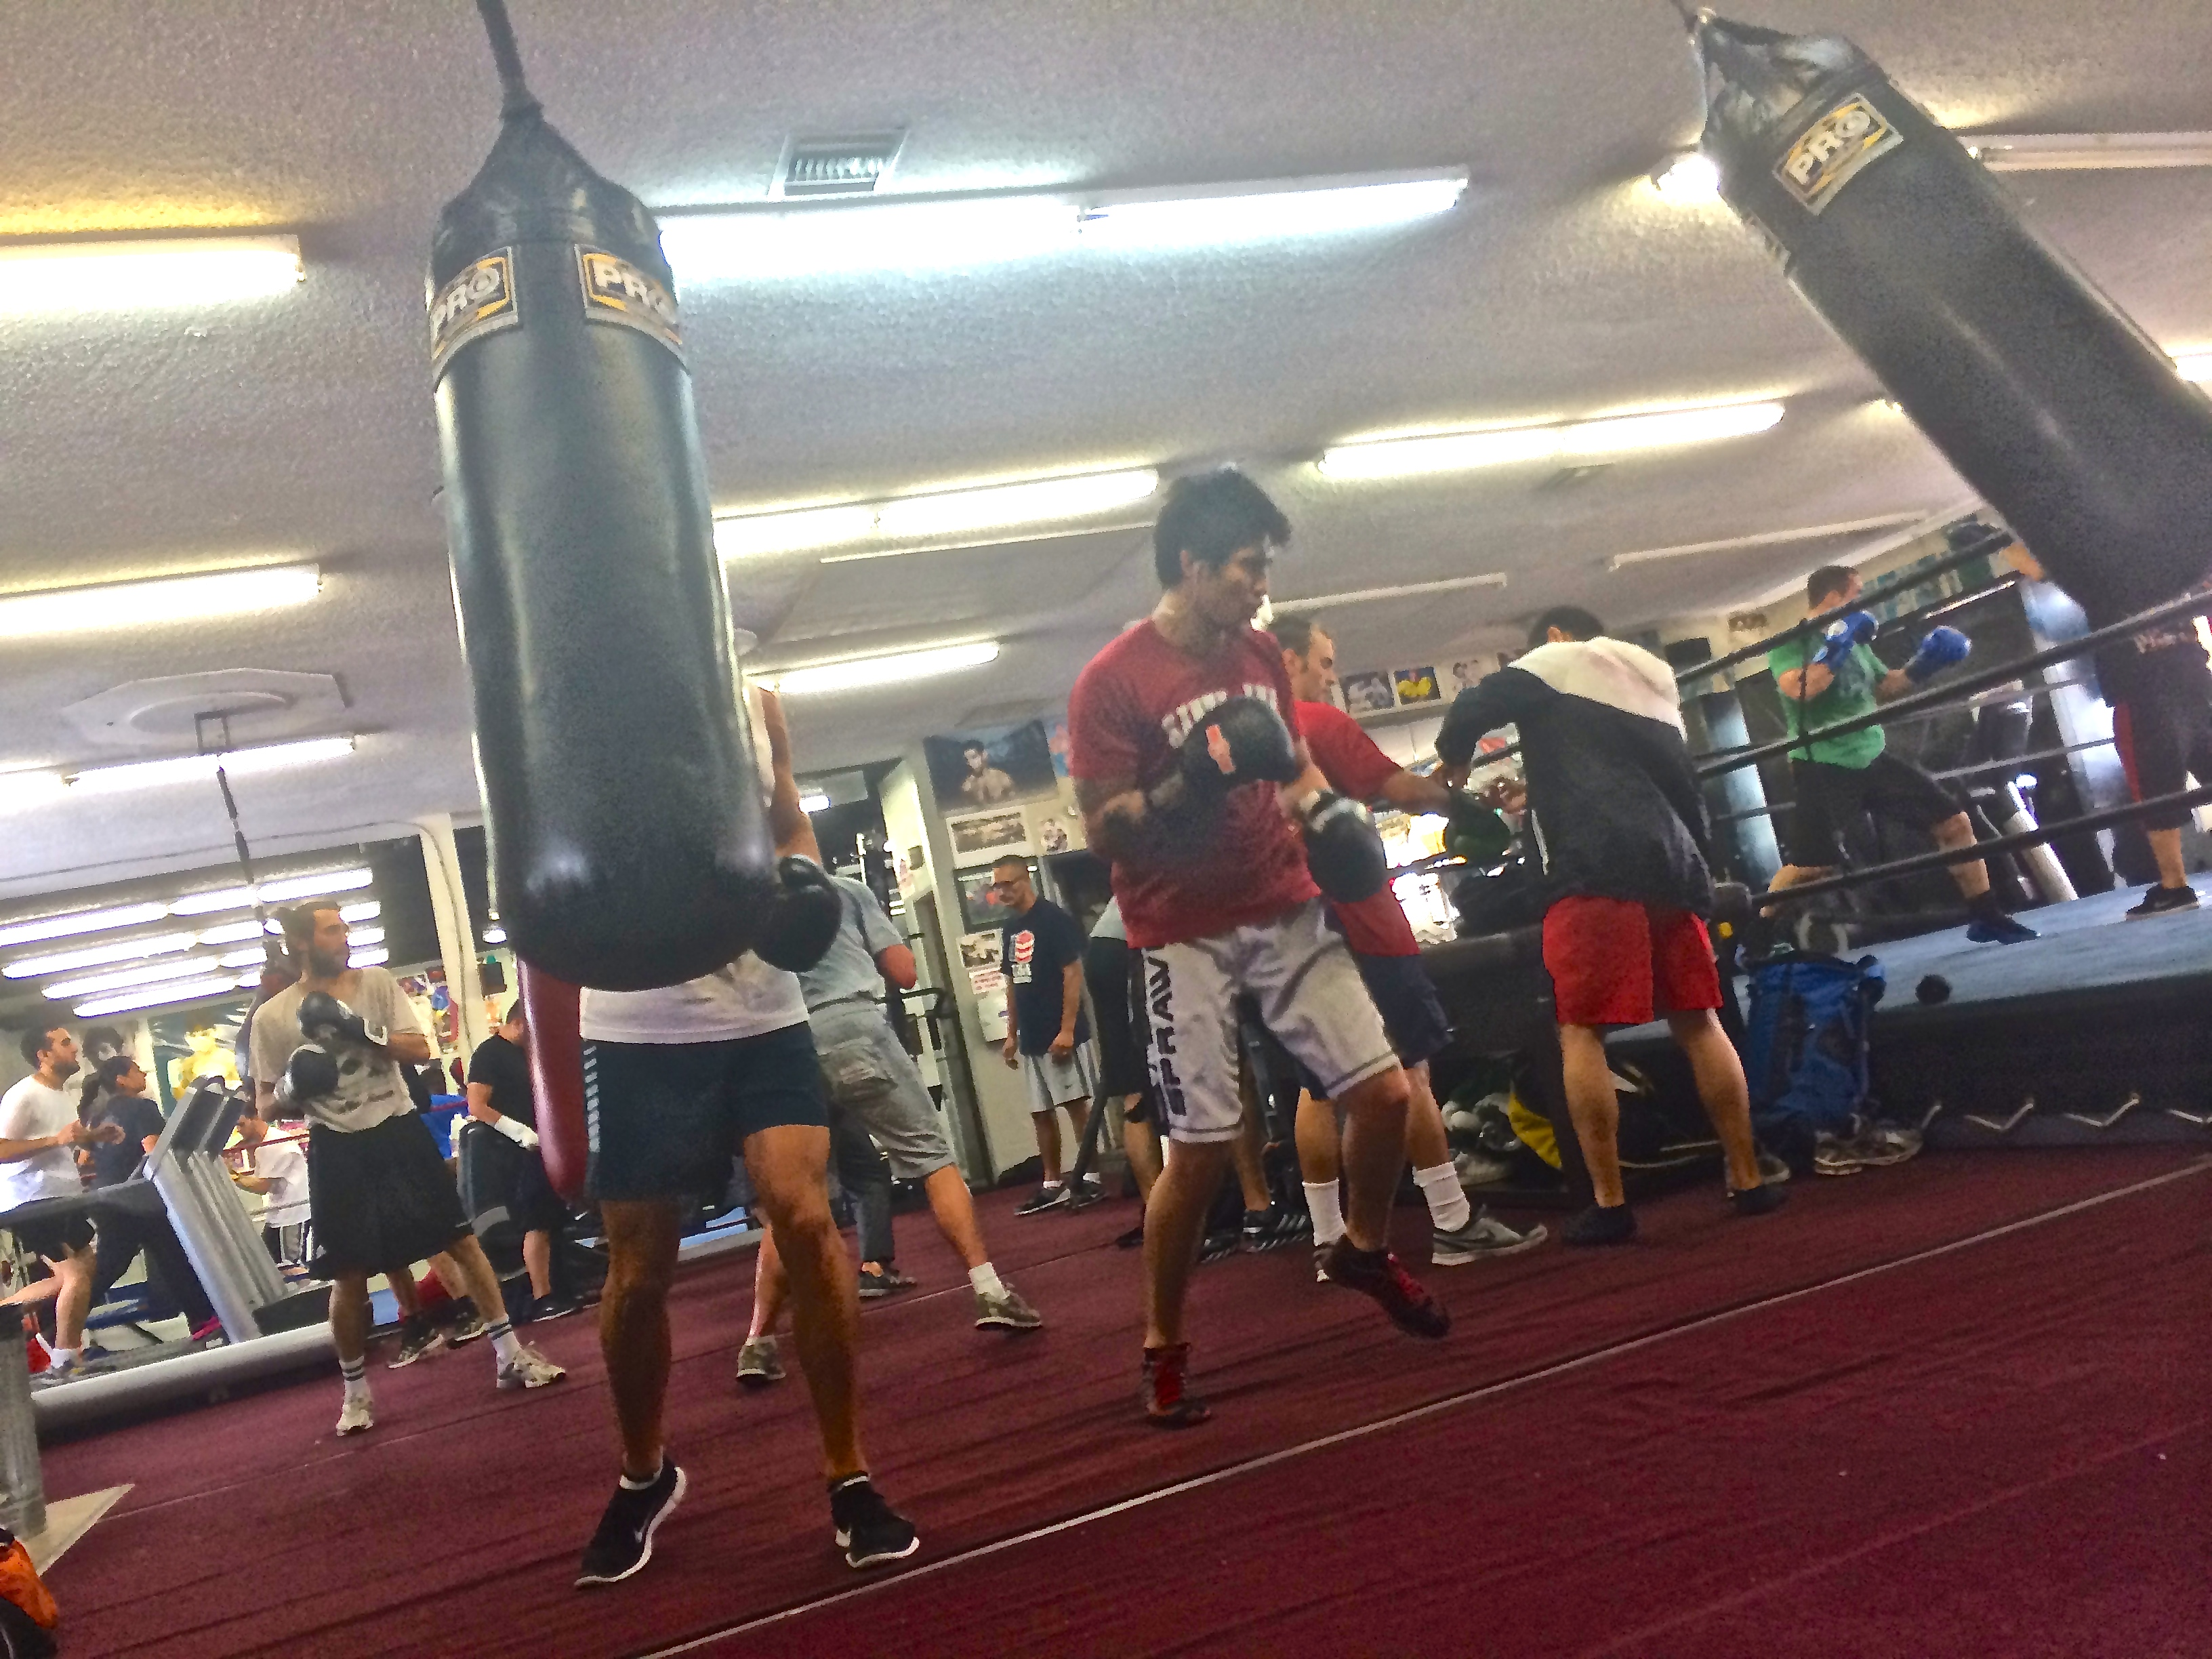 PHOTOS: A Day @ Wild Card Gym | blood money boxing